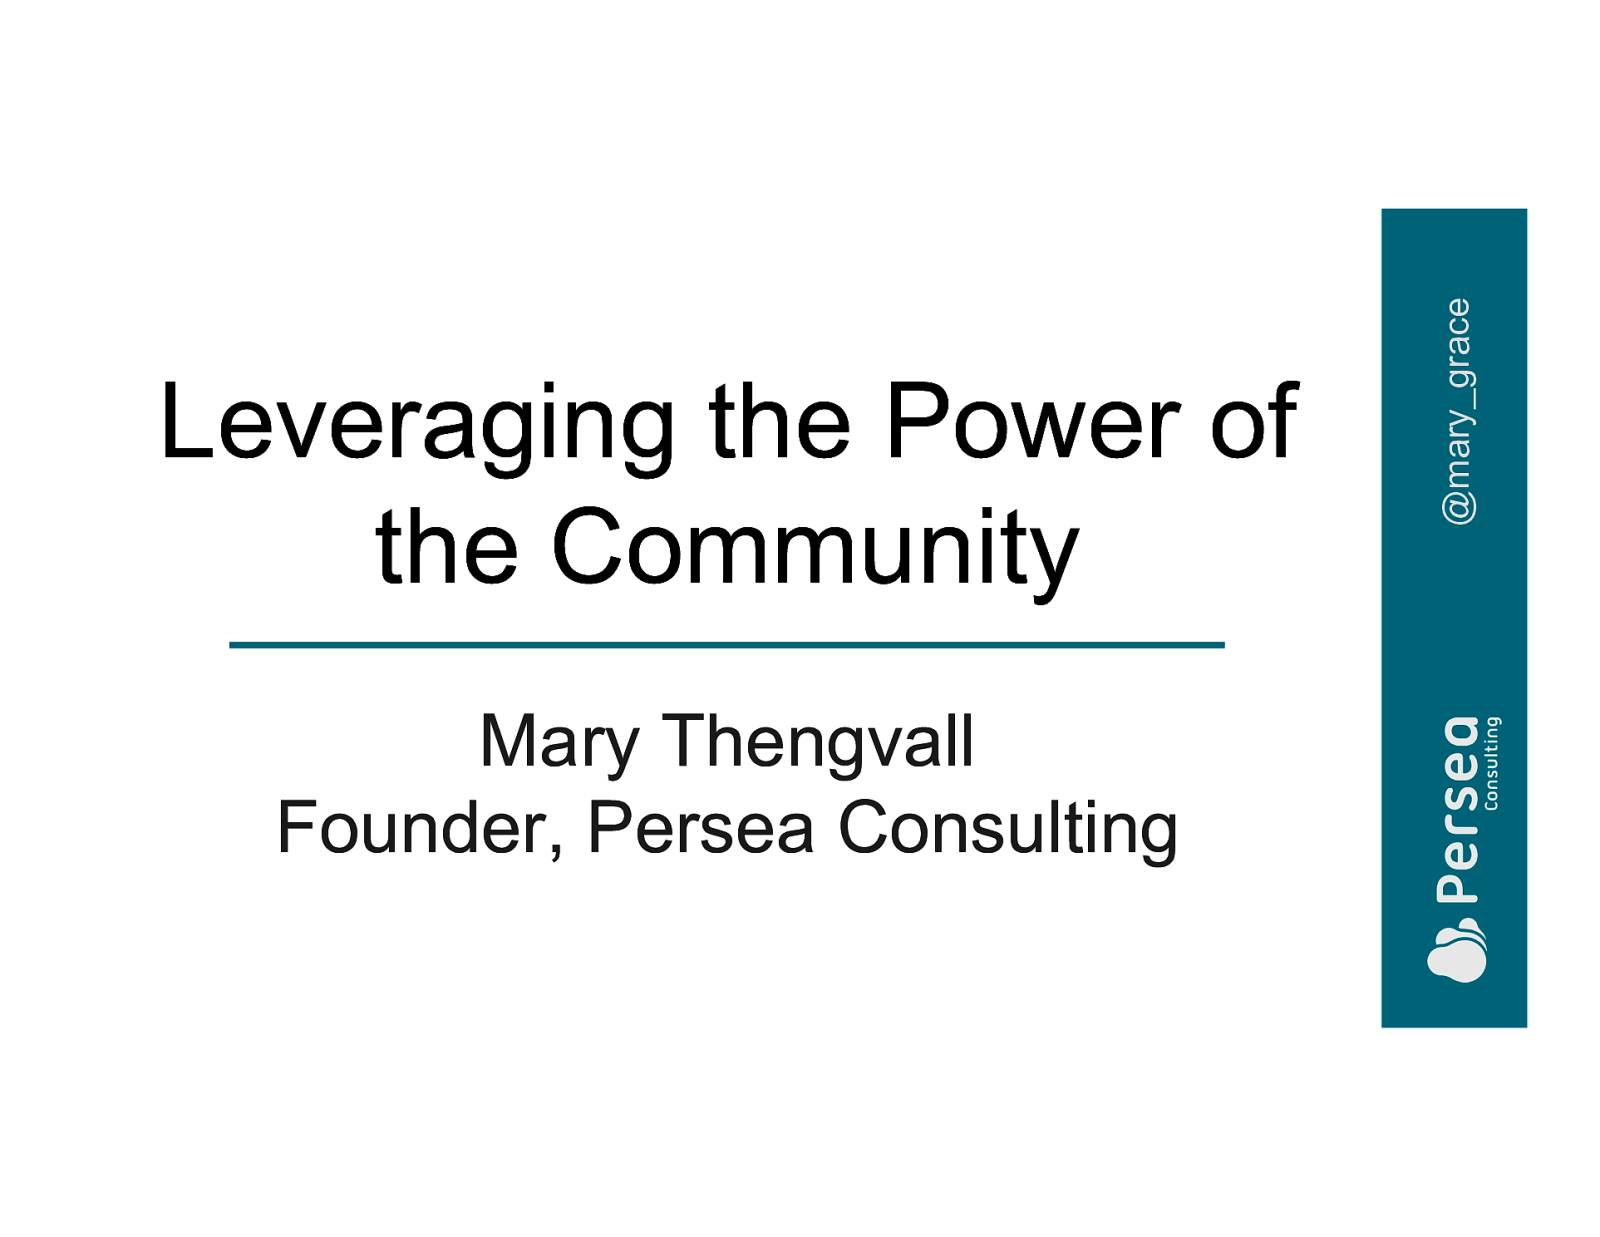 Leveraging the Power of Community